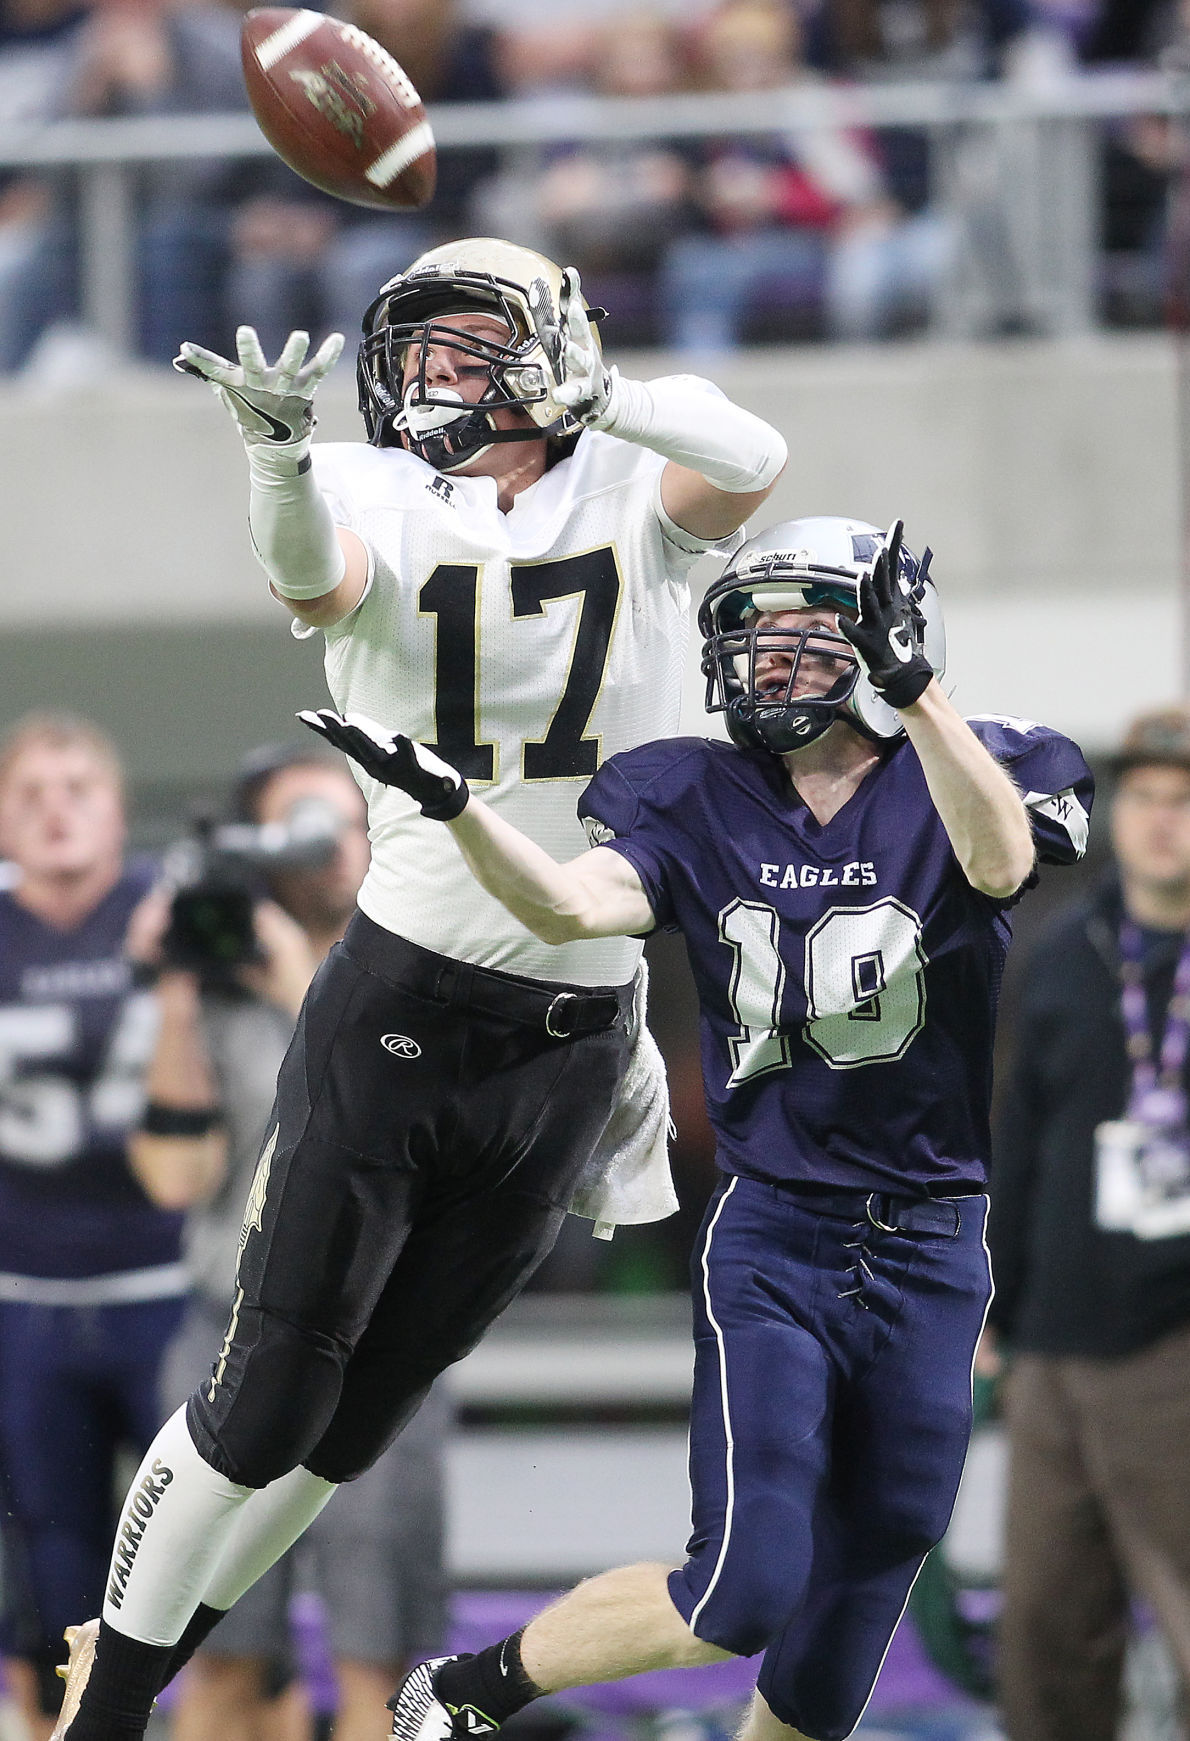 MSHSL football playoffs: Caledonia heads to state quarterfinals after big game from Jordan Burg